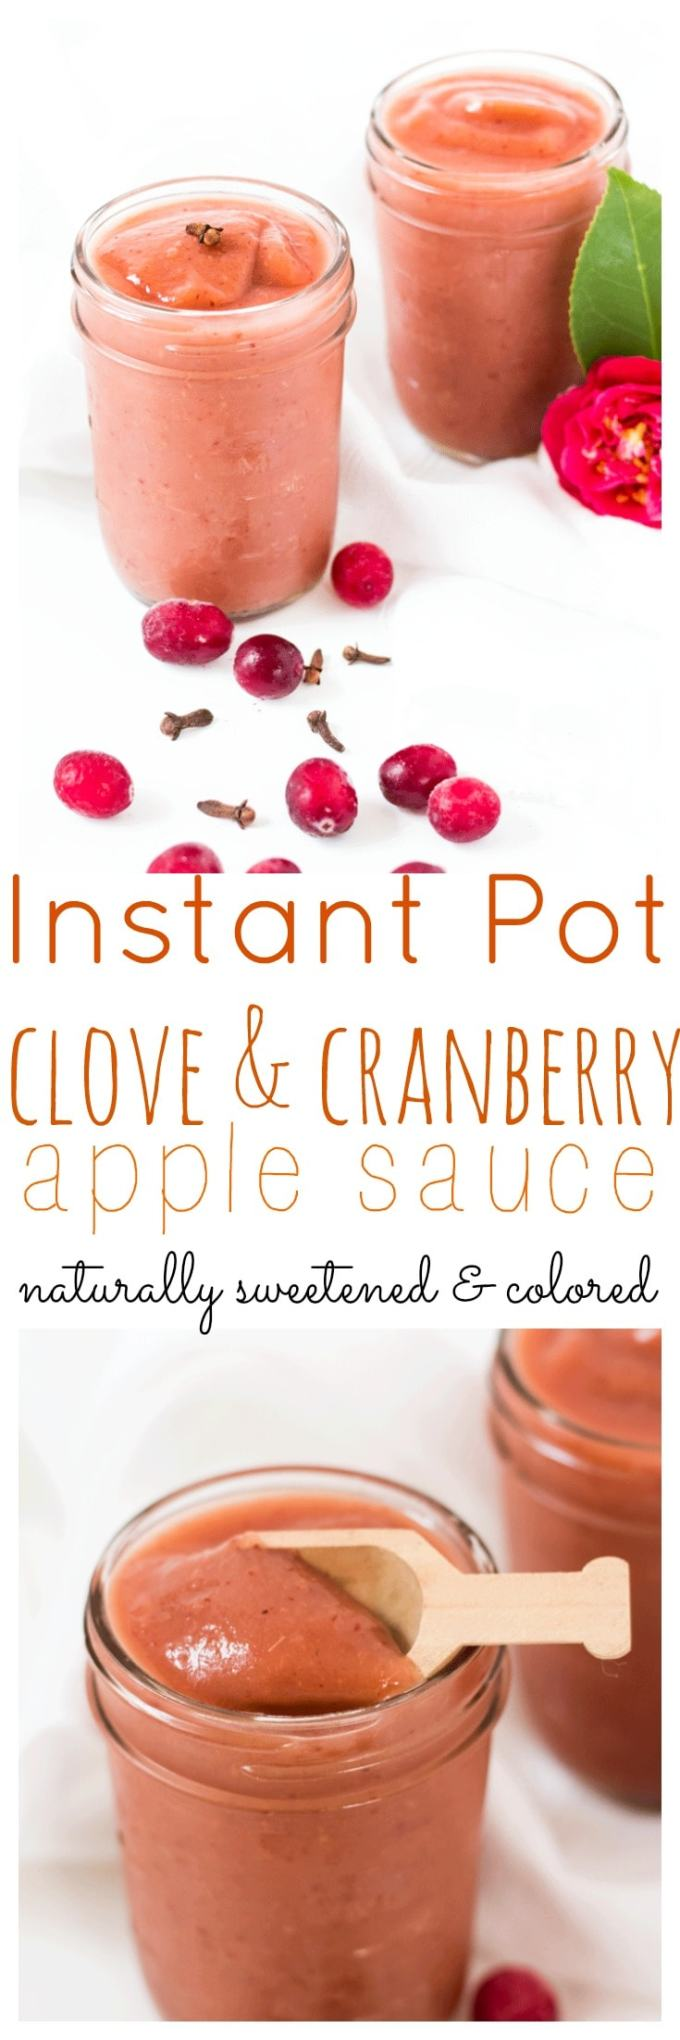 Clove and Cranberry Apple Sauce is the perfect sweetener for baked goods or a popping pink snack for little hands. Naturally sweetened